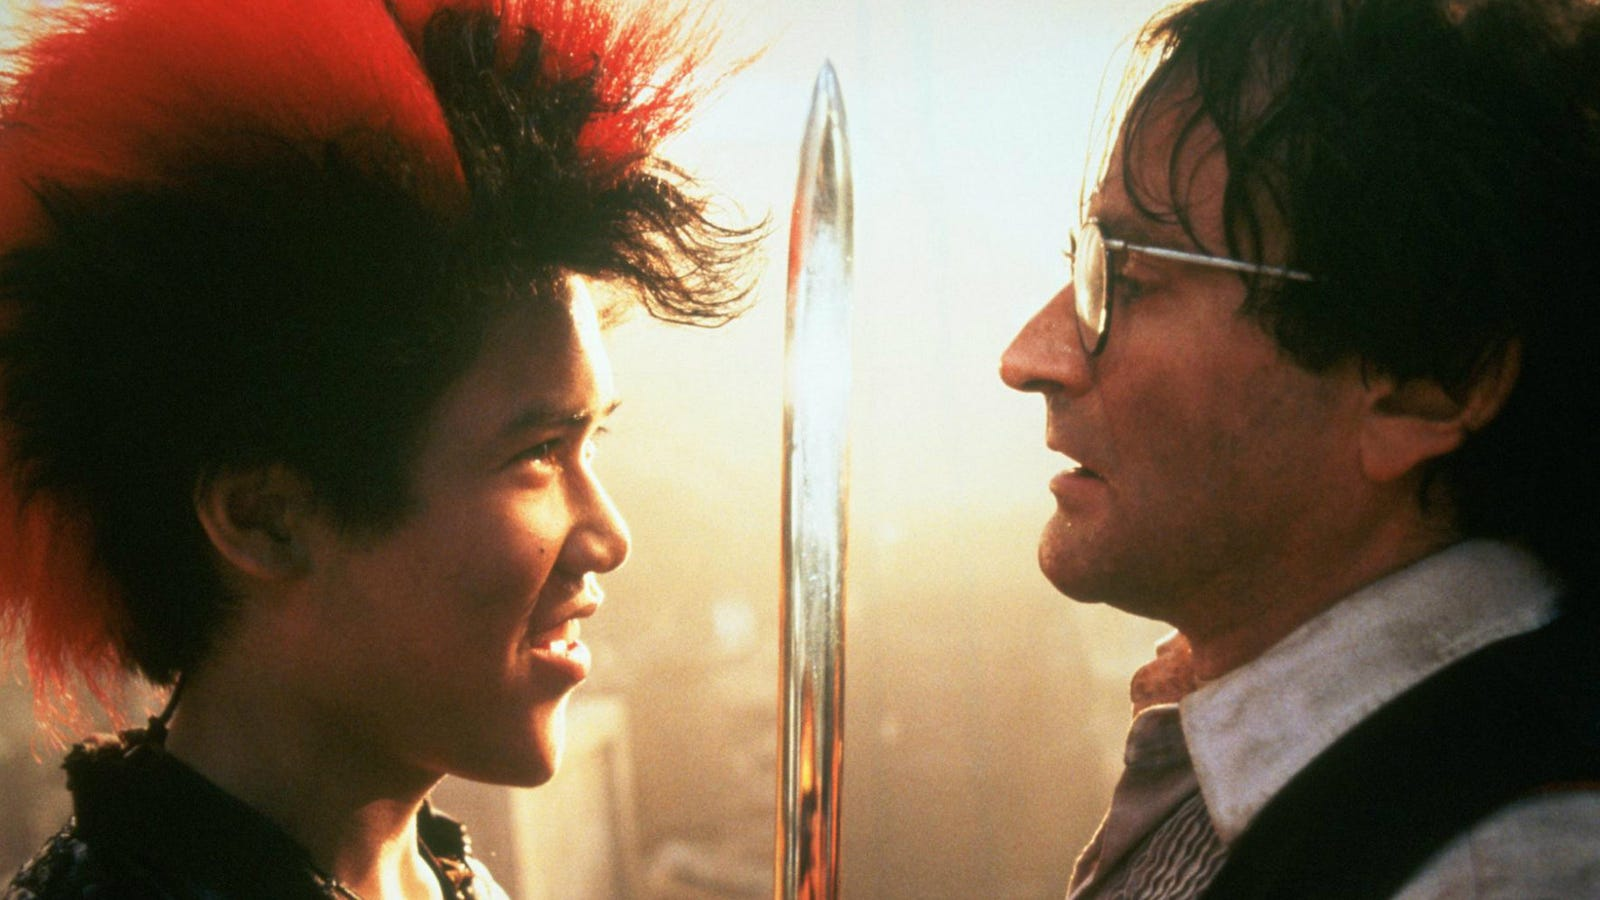 Watch Rufio's Origin Story in This Fan Film Starring the Original Hook Actor